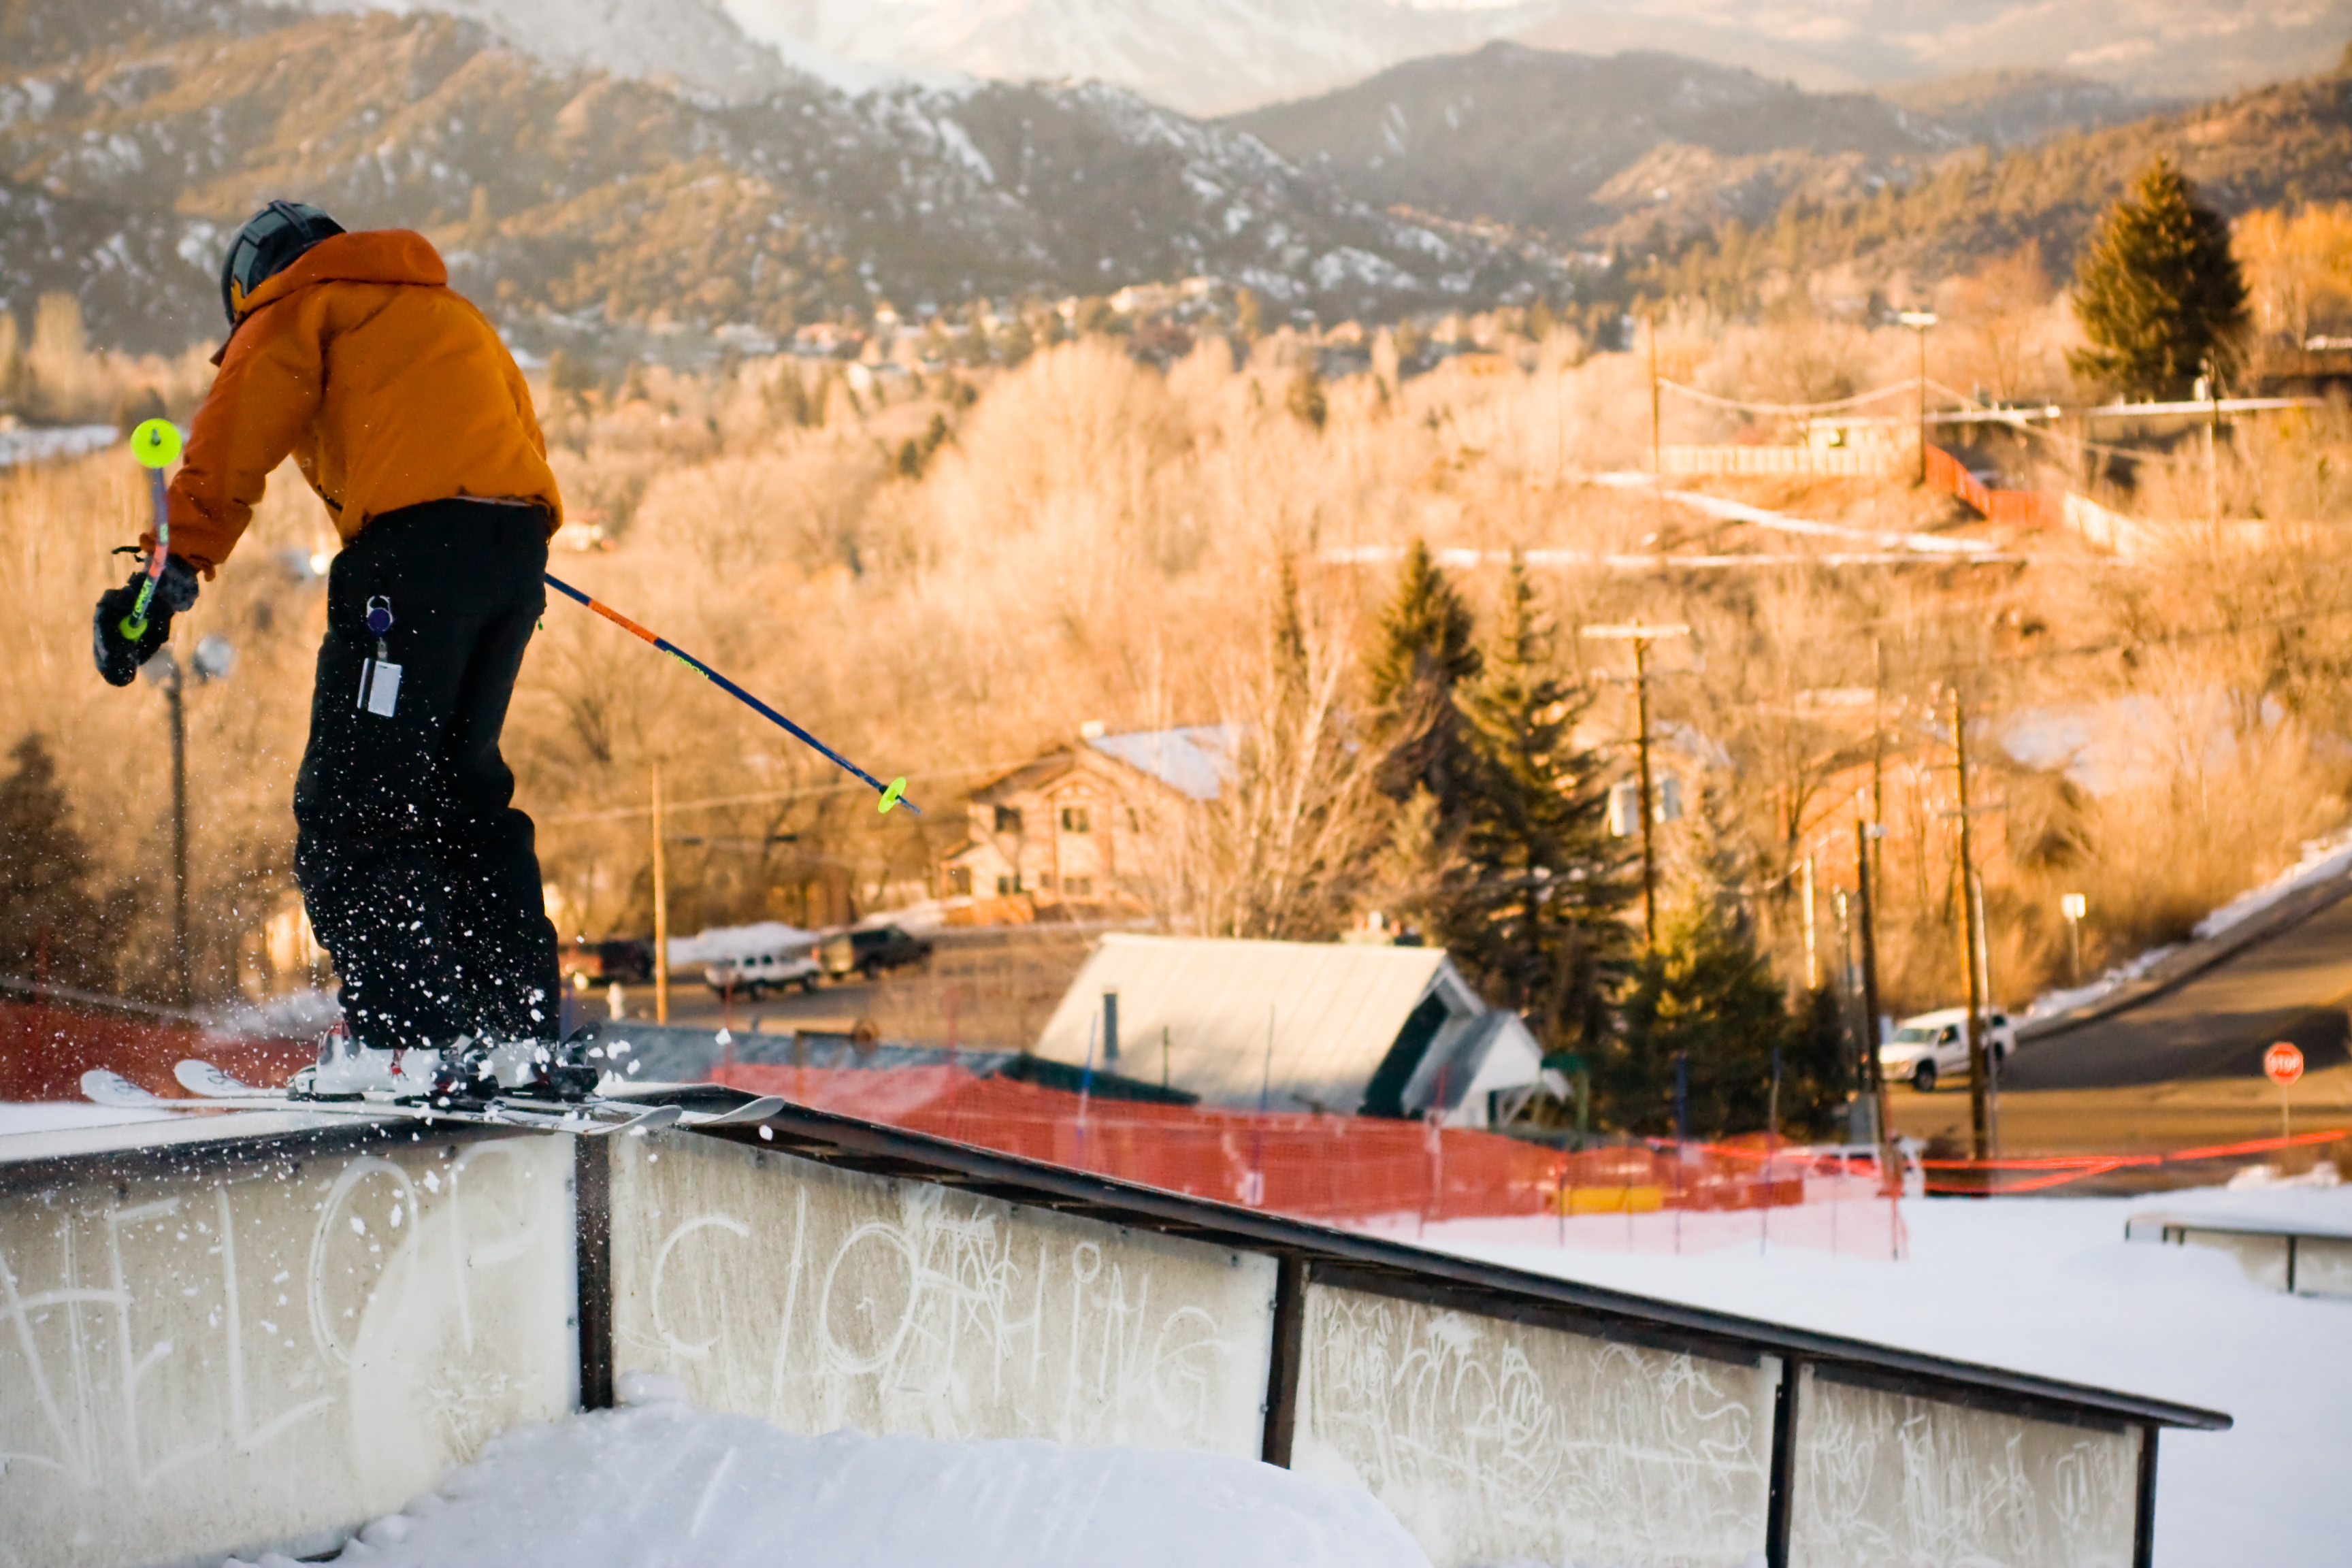 Young trick skier, Action, Poles, Tricks, Trees, HQ Photo